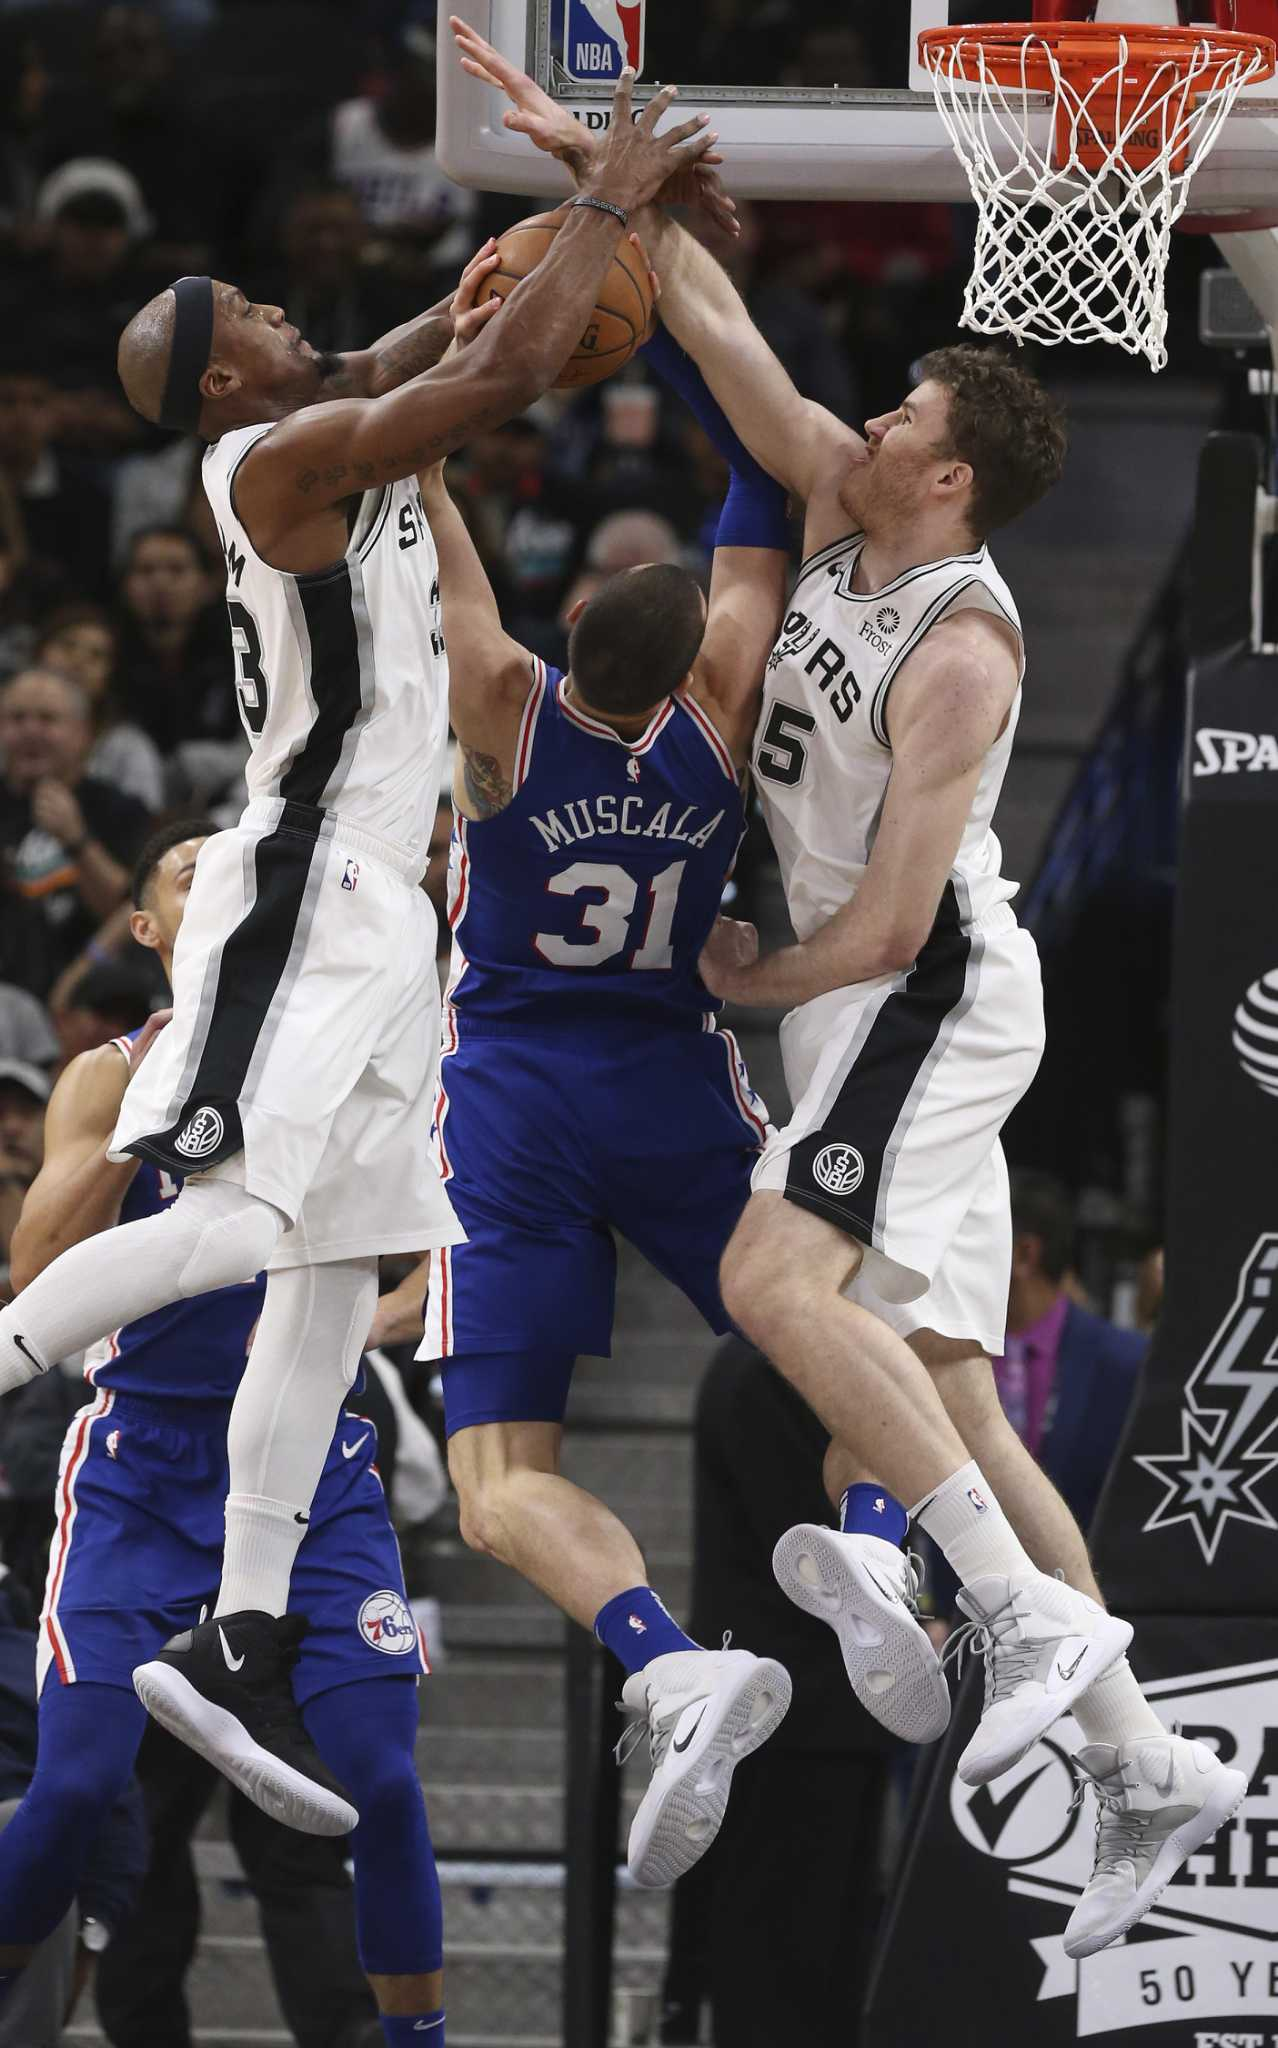 Spurs close homestand by routing Philly